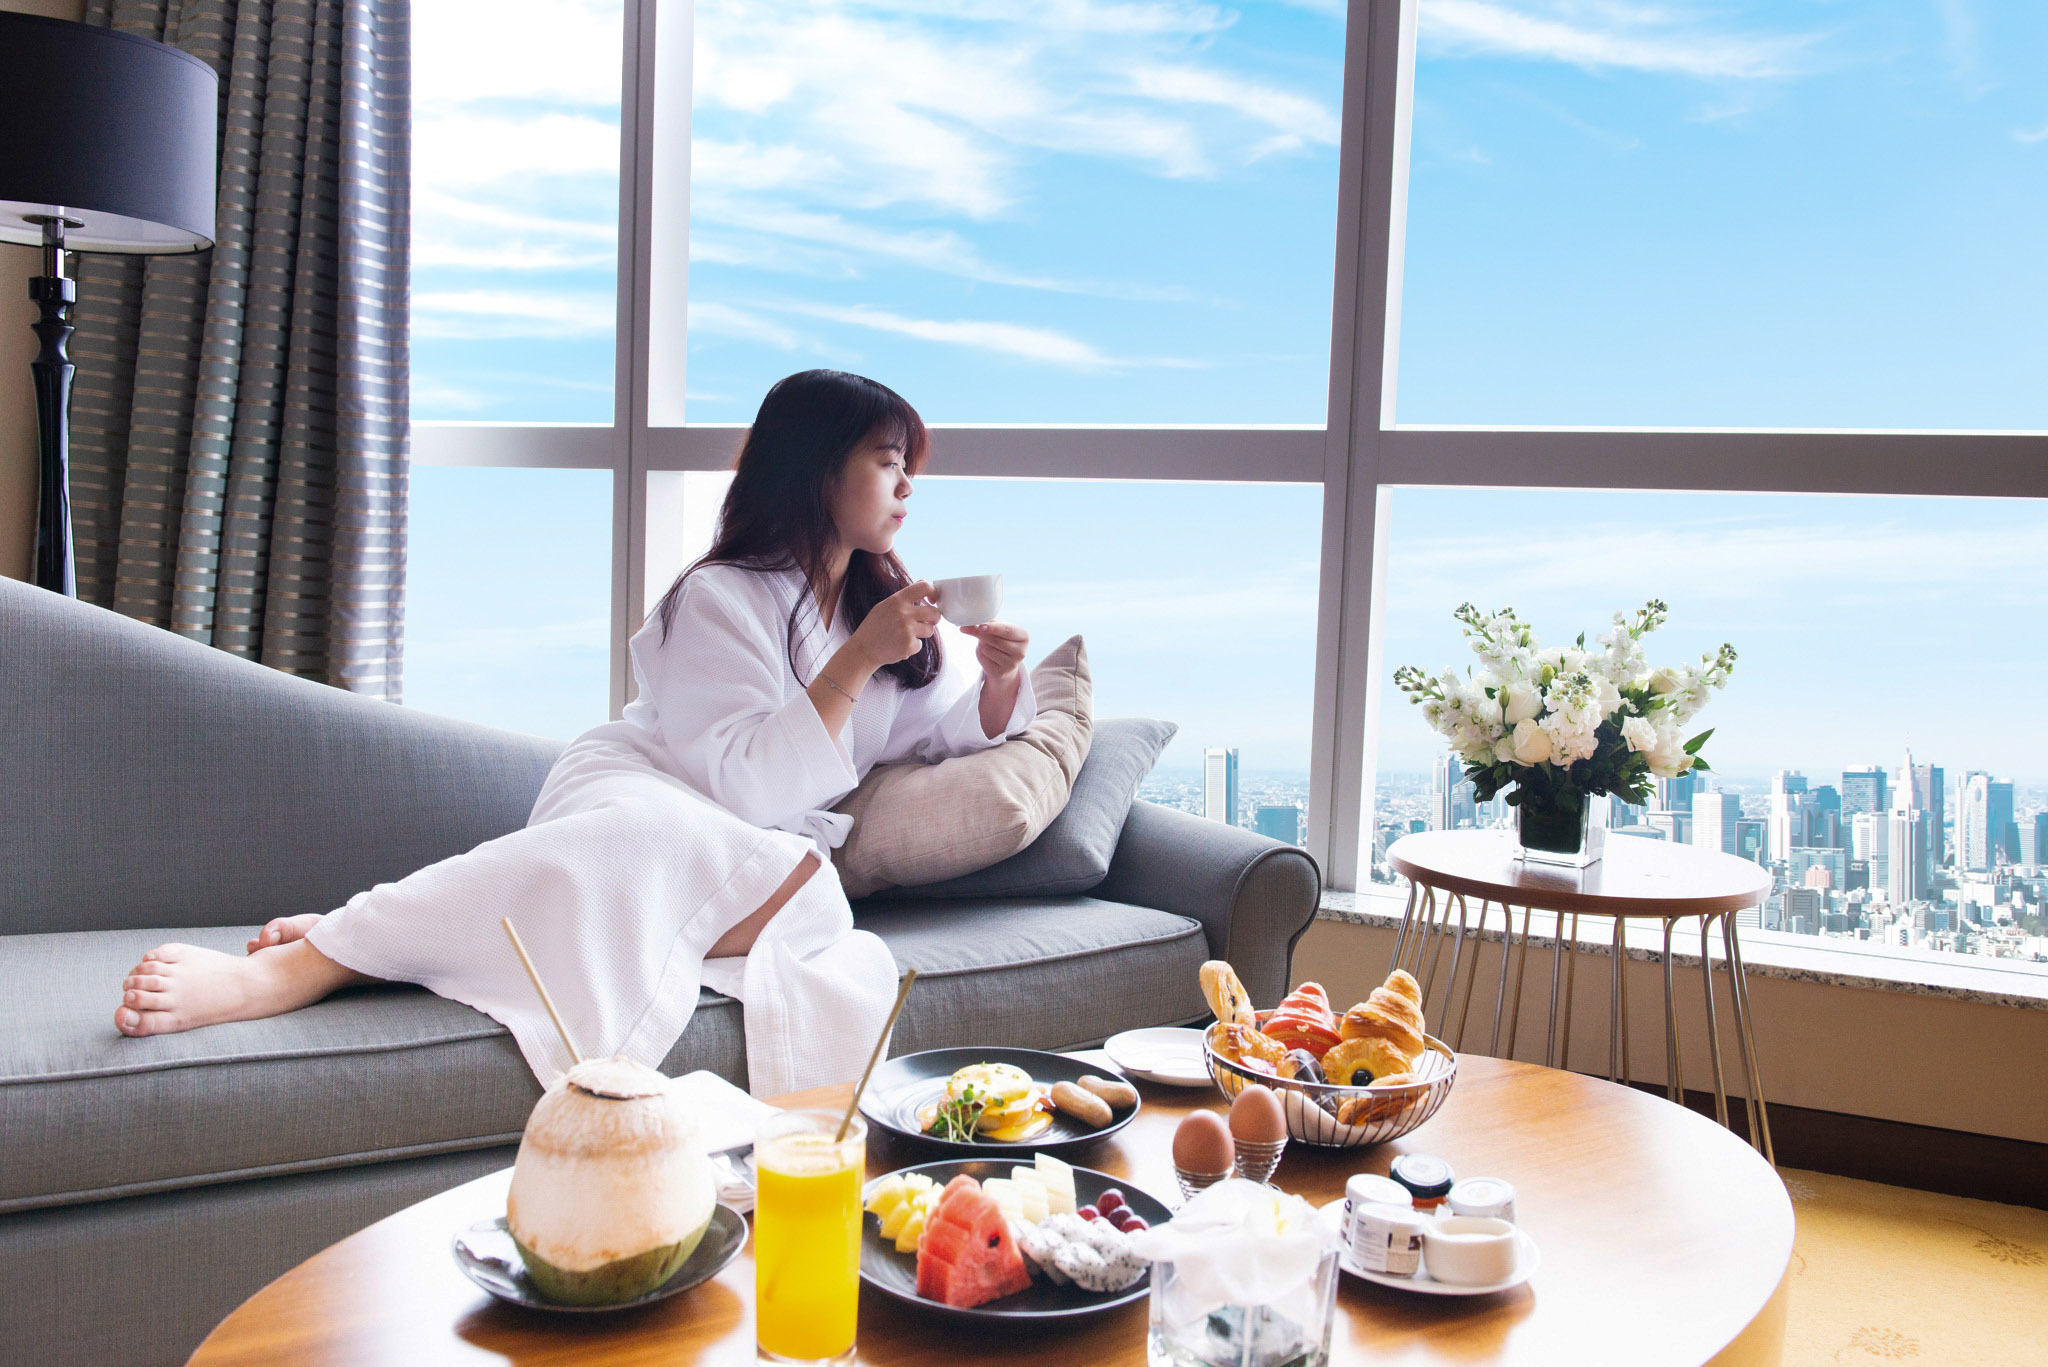 a lady enjoying breakfast in her hotel room with beautiful view of Hanoi city